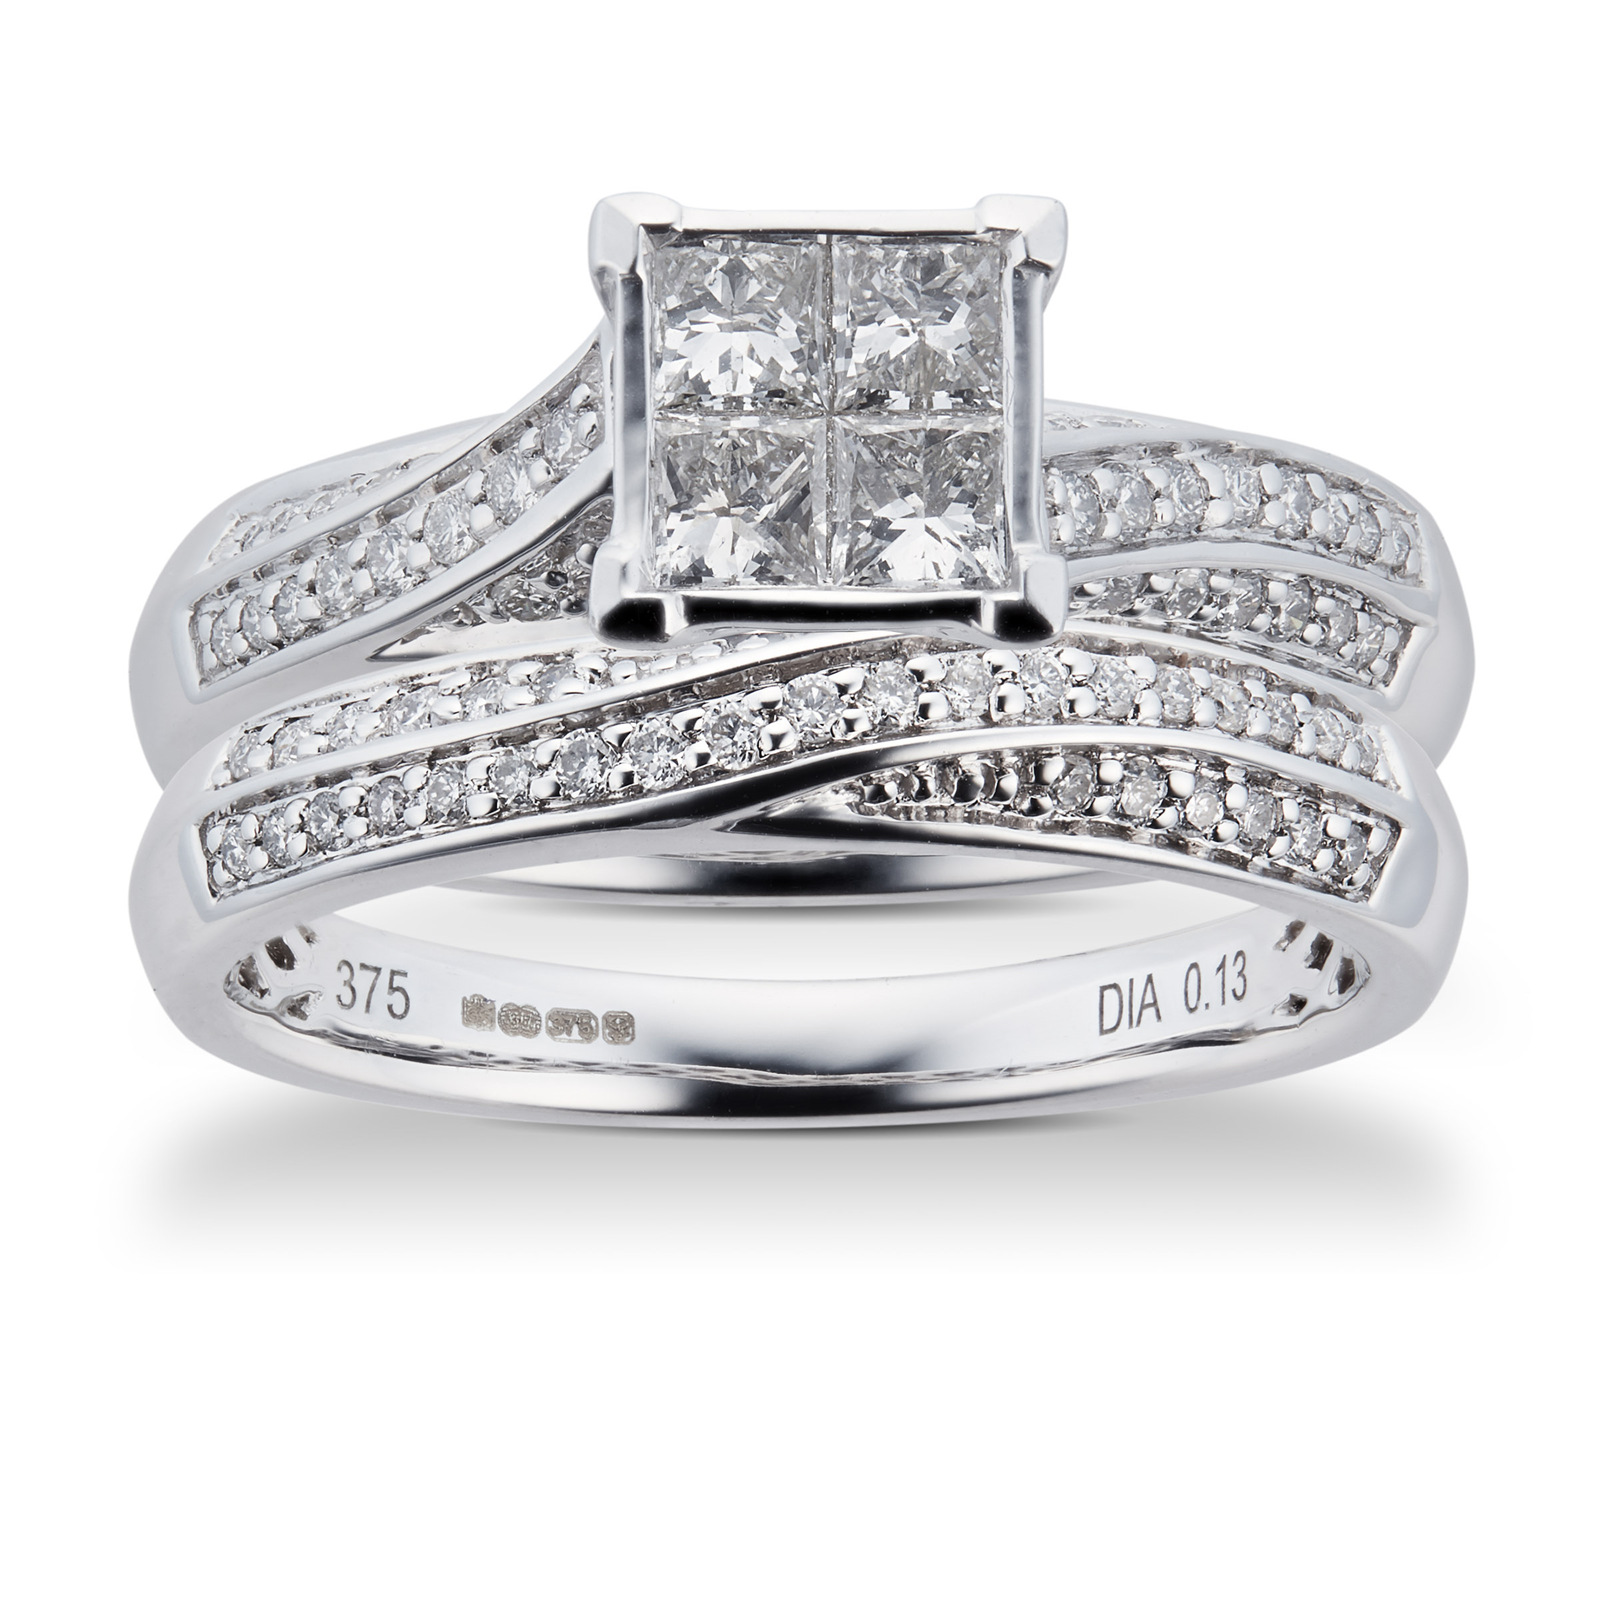 Princess and Brilliant Cut 0.76 Carat Total Weight Diamond Bridal Set in 9 Carat White Gold  Ring Size L